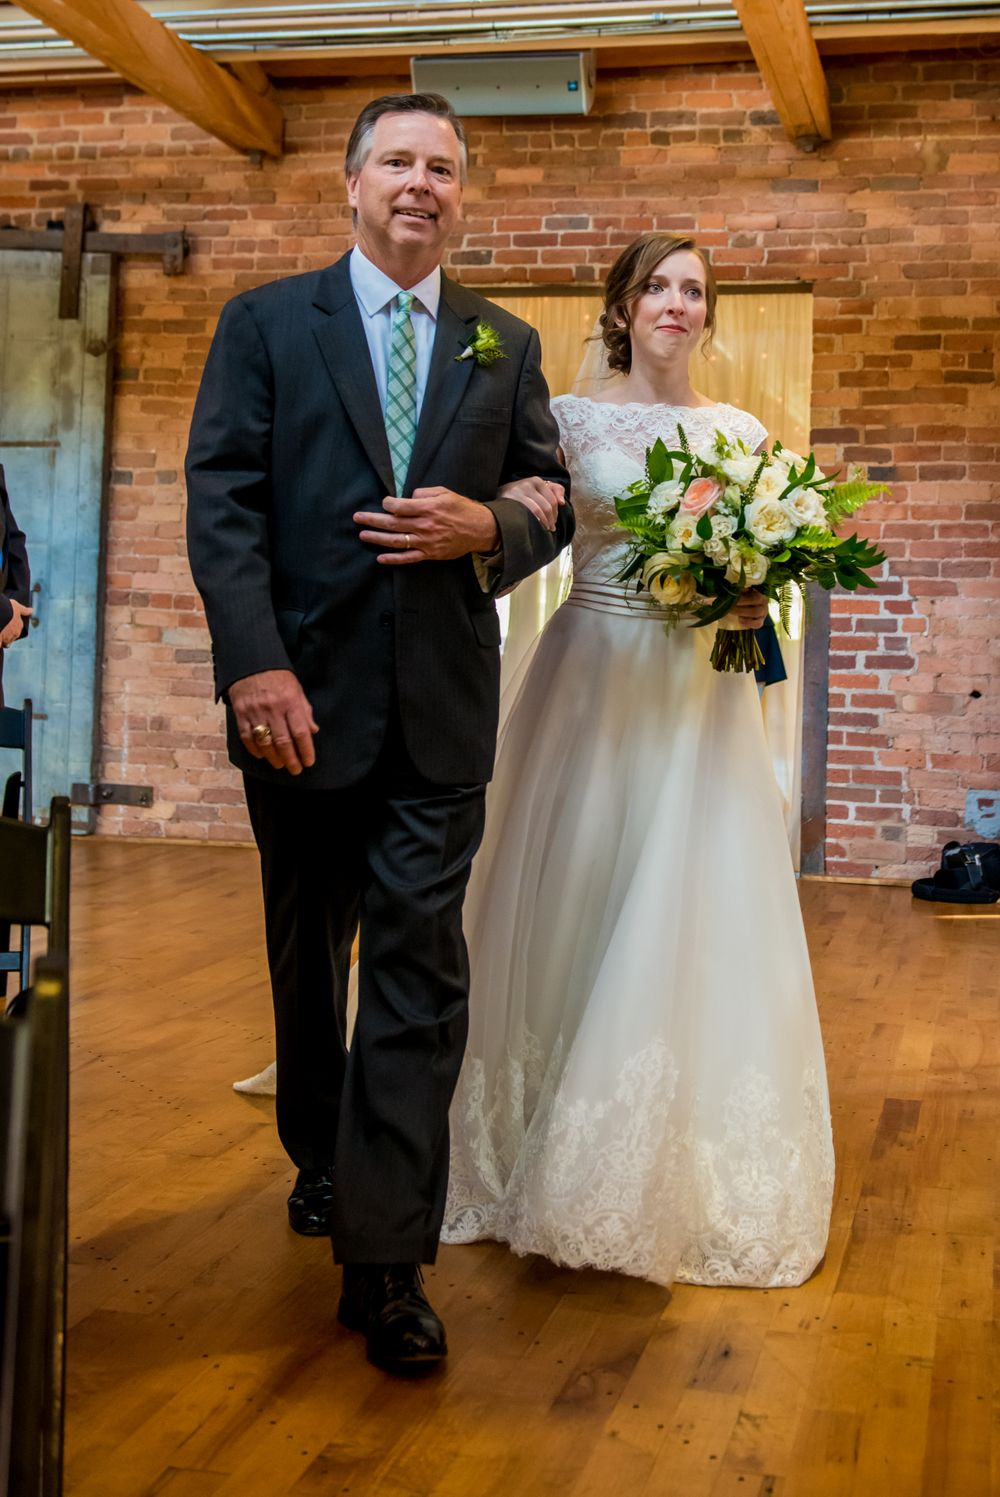 Bride Anna is walked down the aisle by her dad during her wedding at Certus Loft at the Huegonot Mill in Greenville, SC